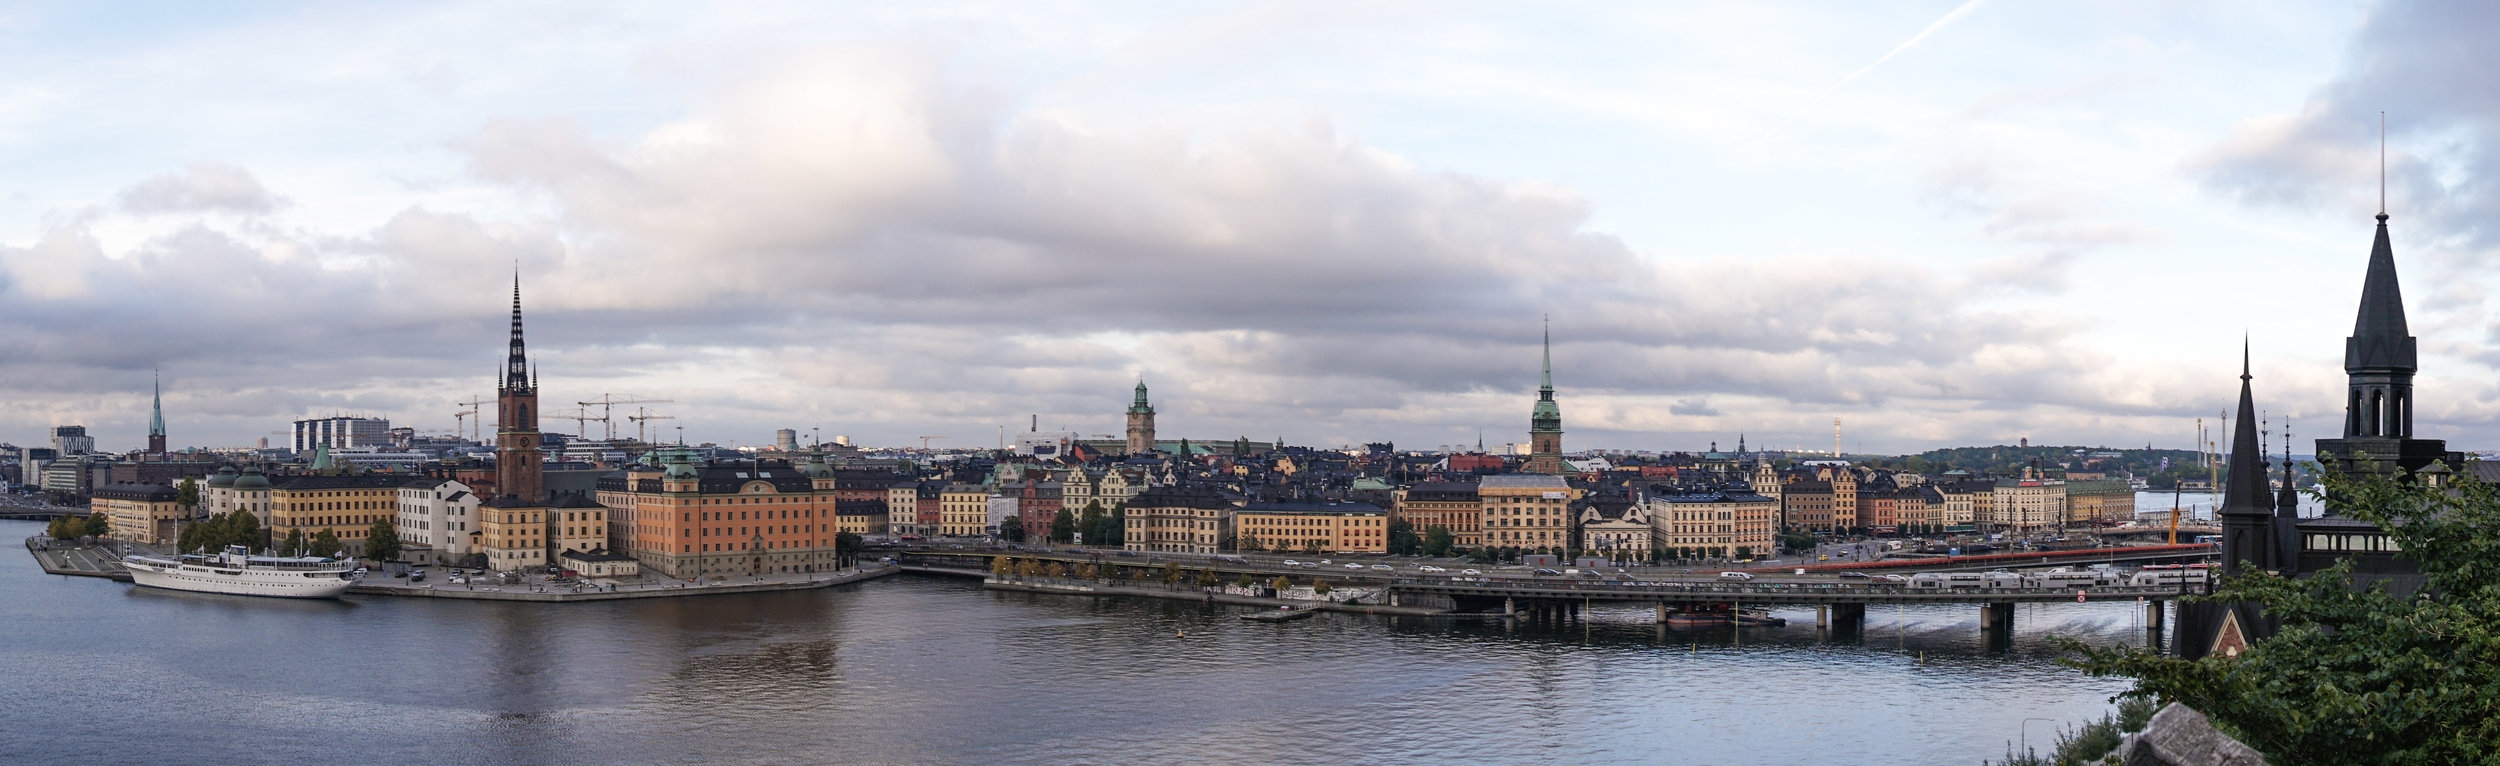 curio.trips.sweden.stockholm.pano.views.jpg